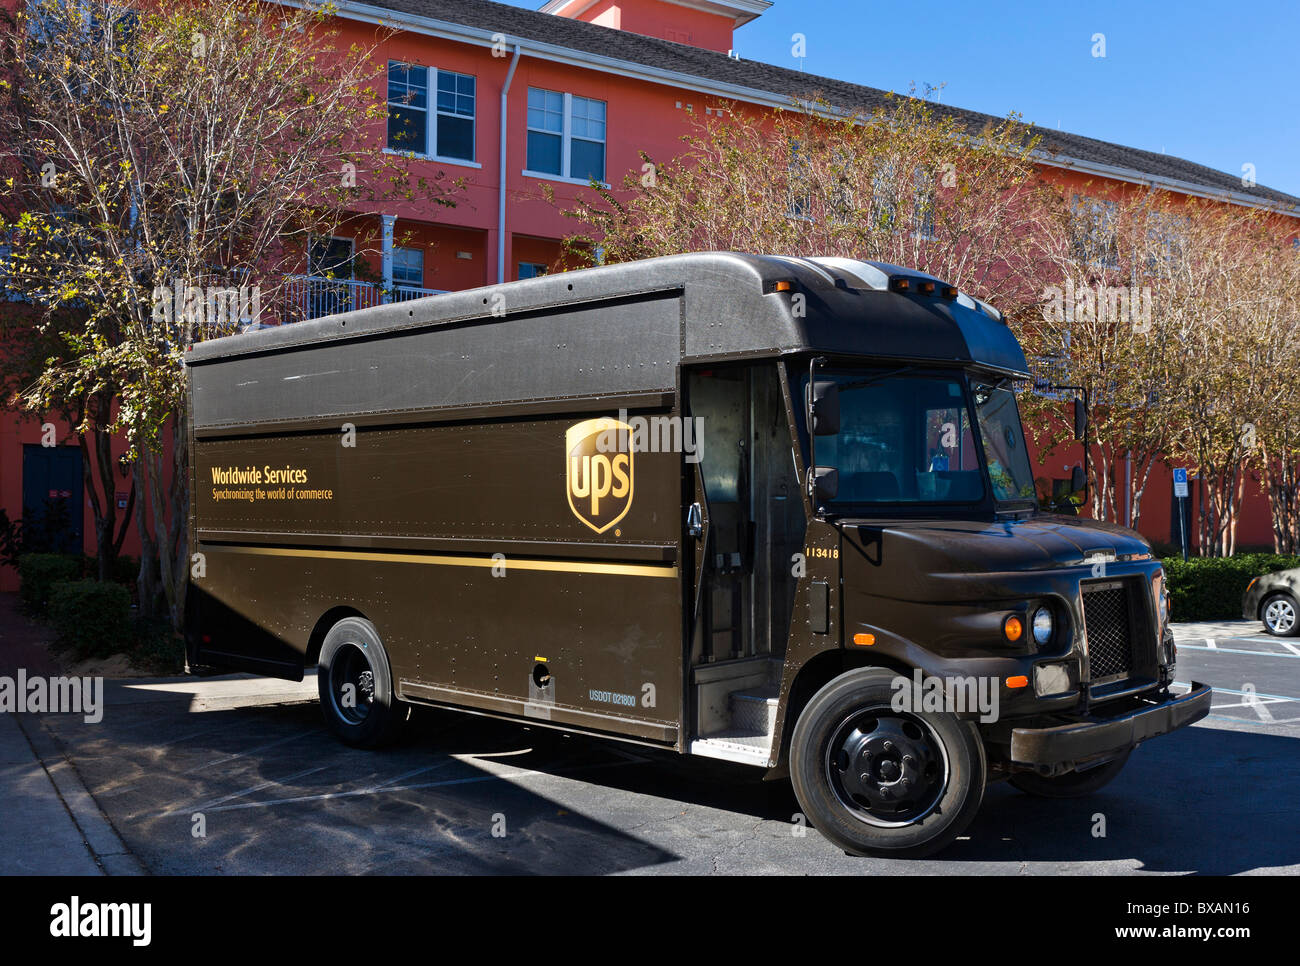 UPS delivery truck, Celebration, Florida, USA - Stock Image